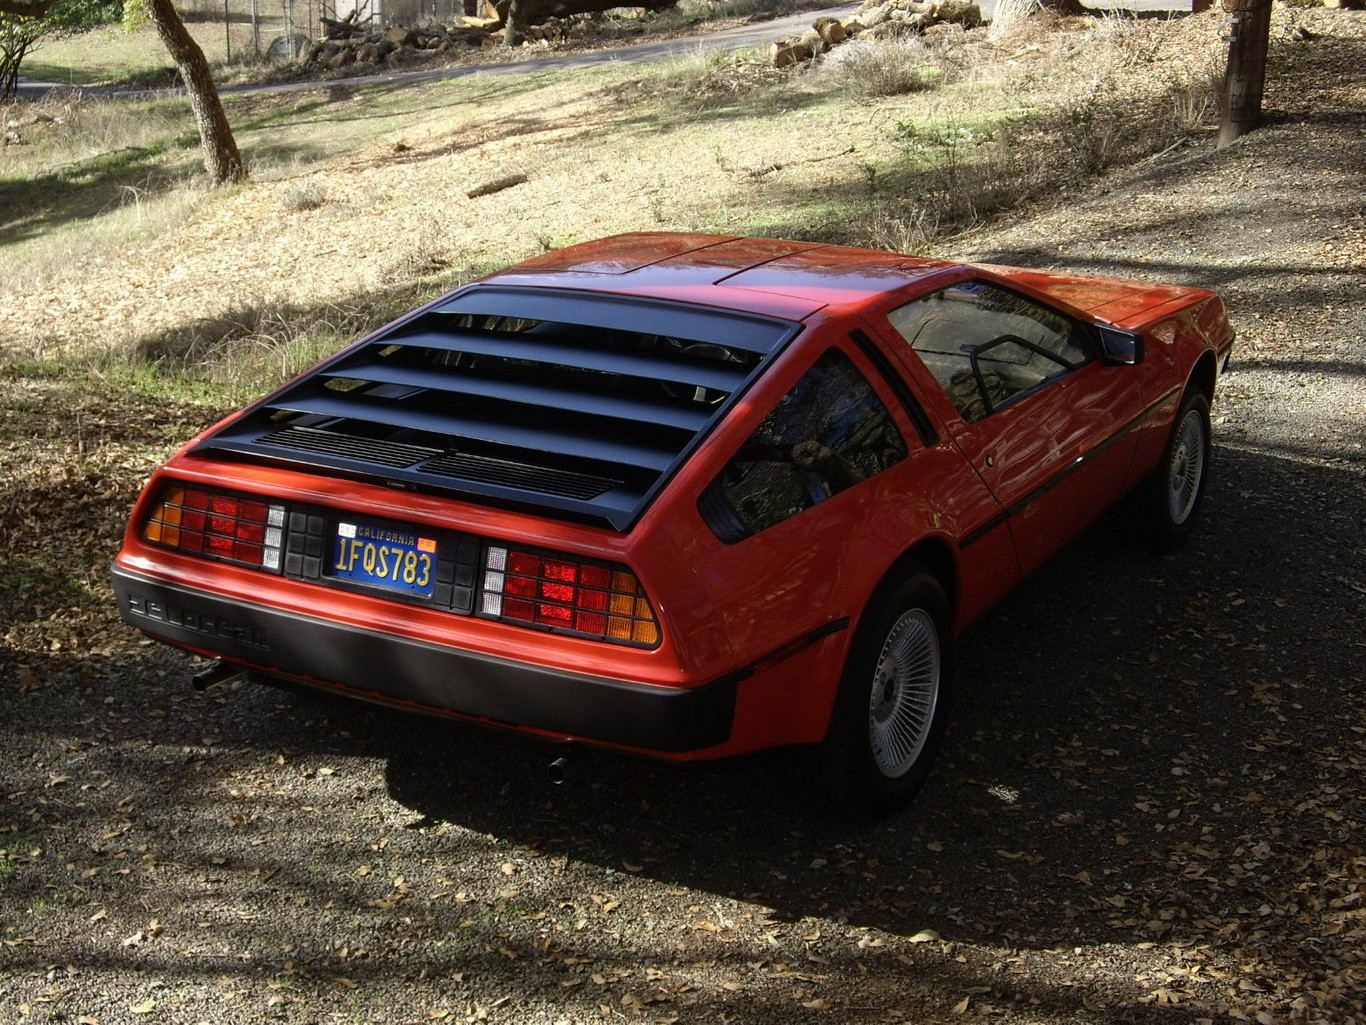 Back to the Future - This DeLorean Shows Just 981 Miles on ...